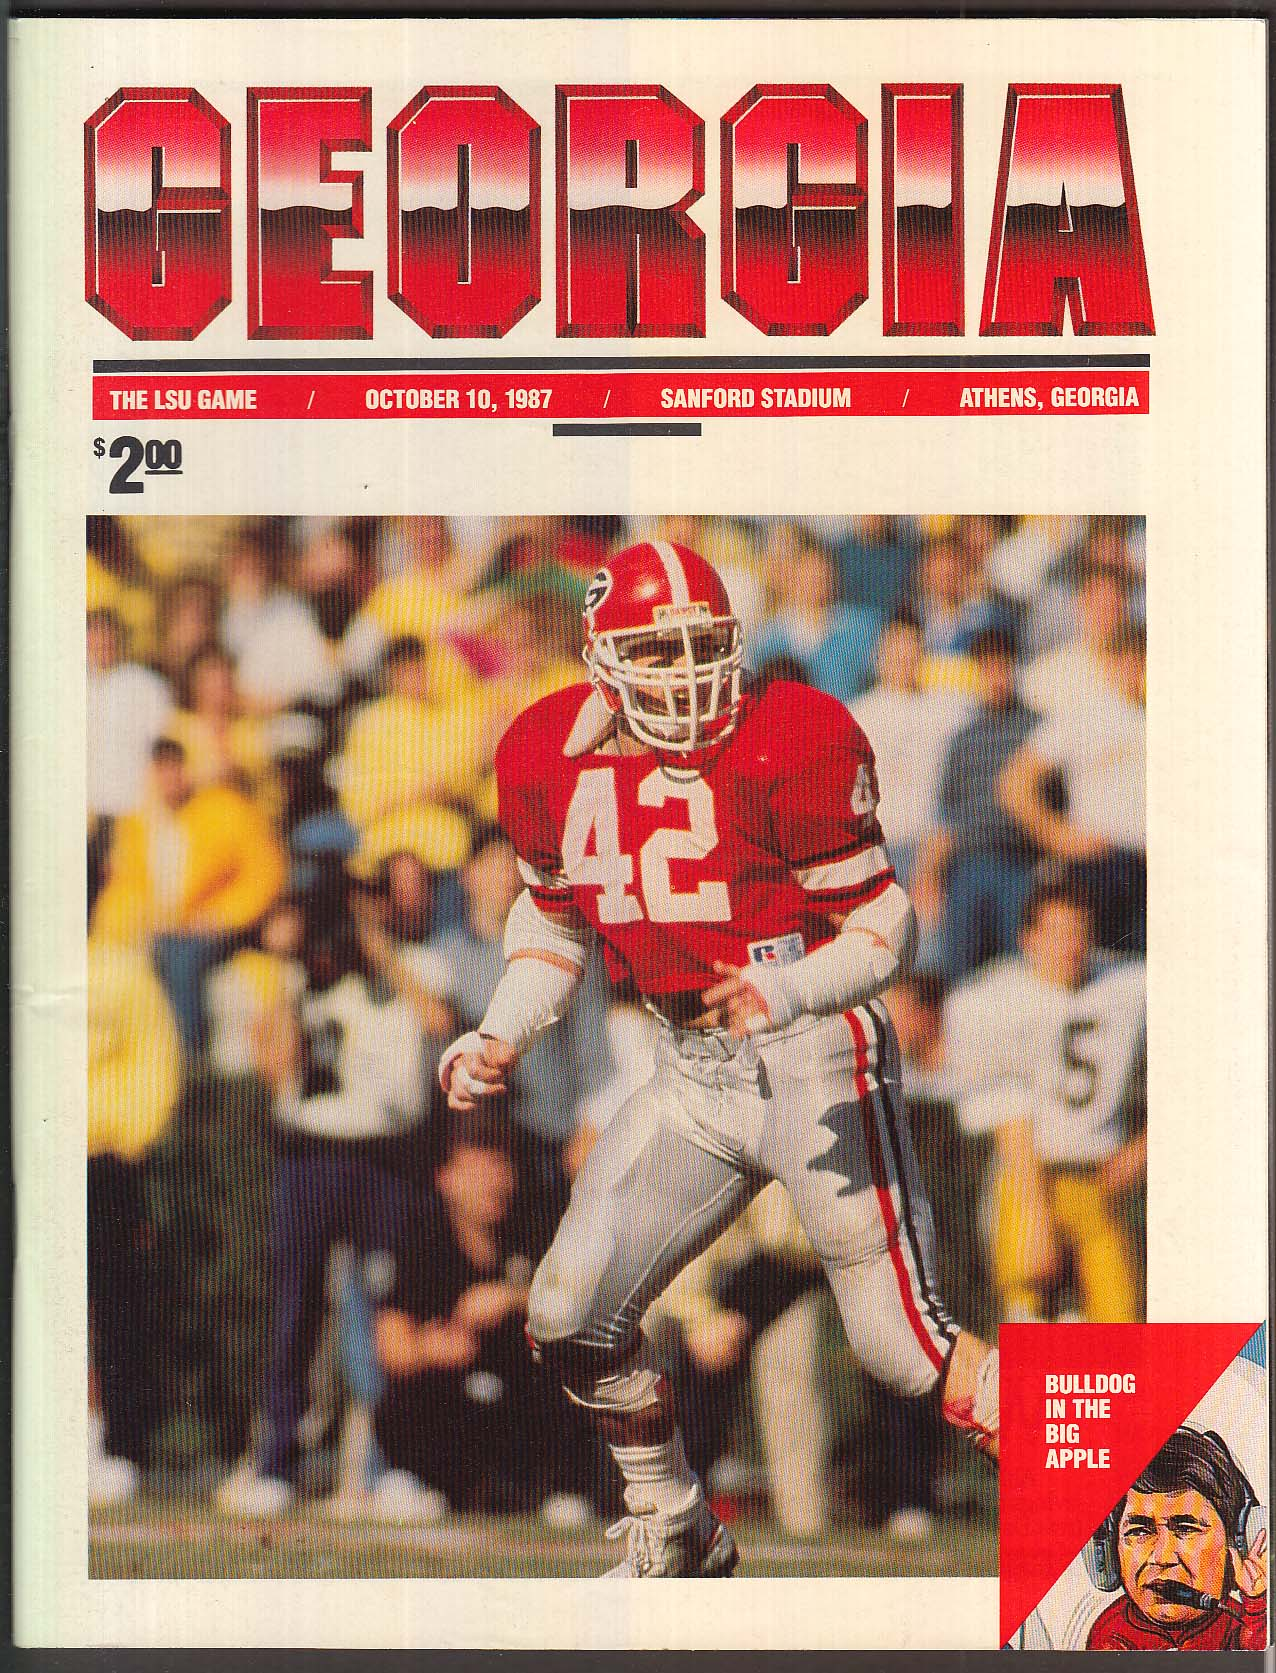 Georgia the LSU Game Official Souvenir Program 10/10 1987